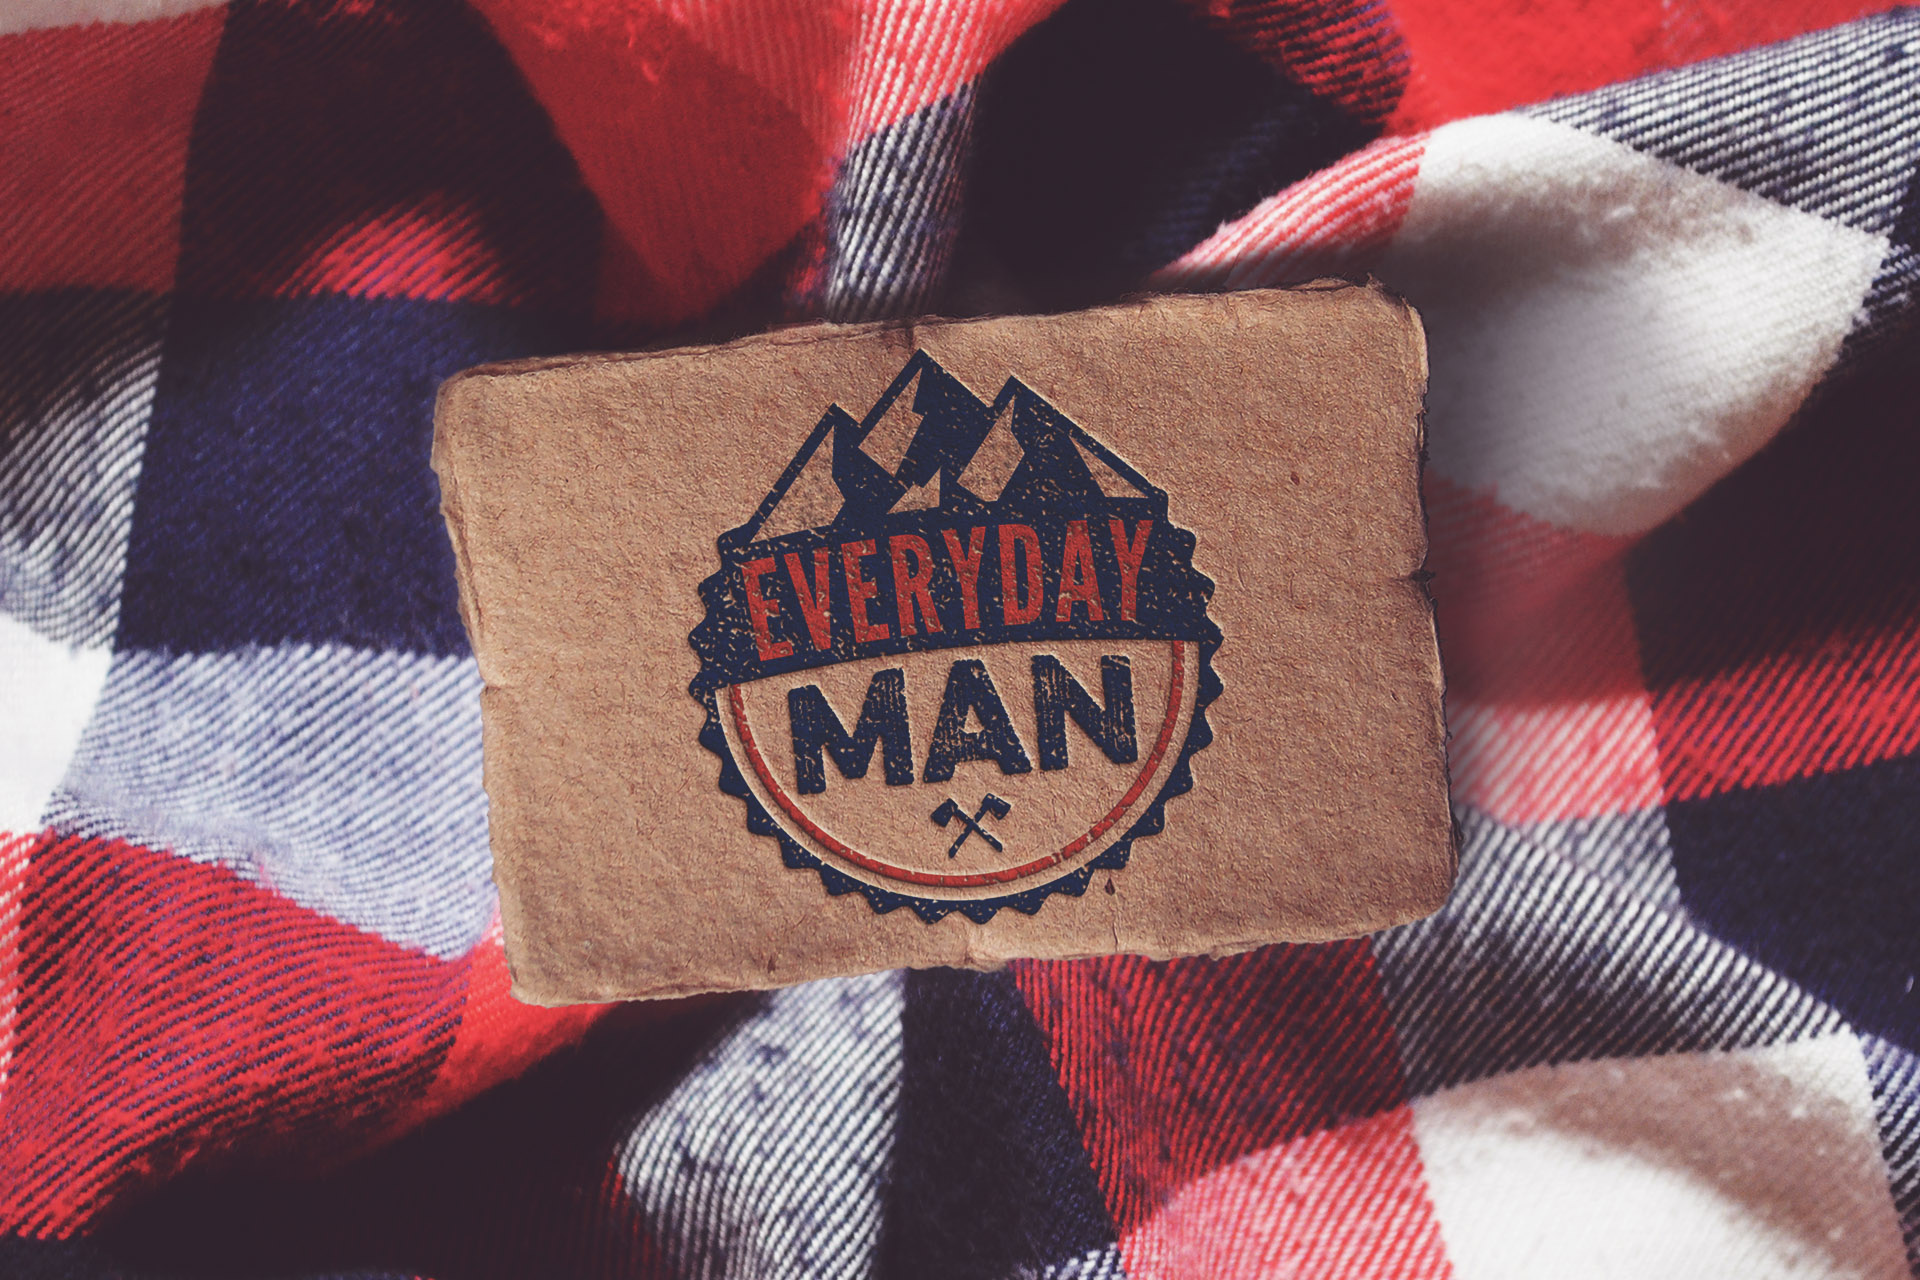 Southeast: Everyday Man - Men's Conference | Shane Harris